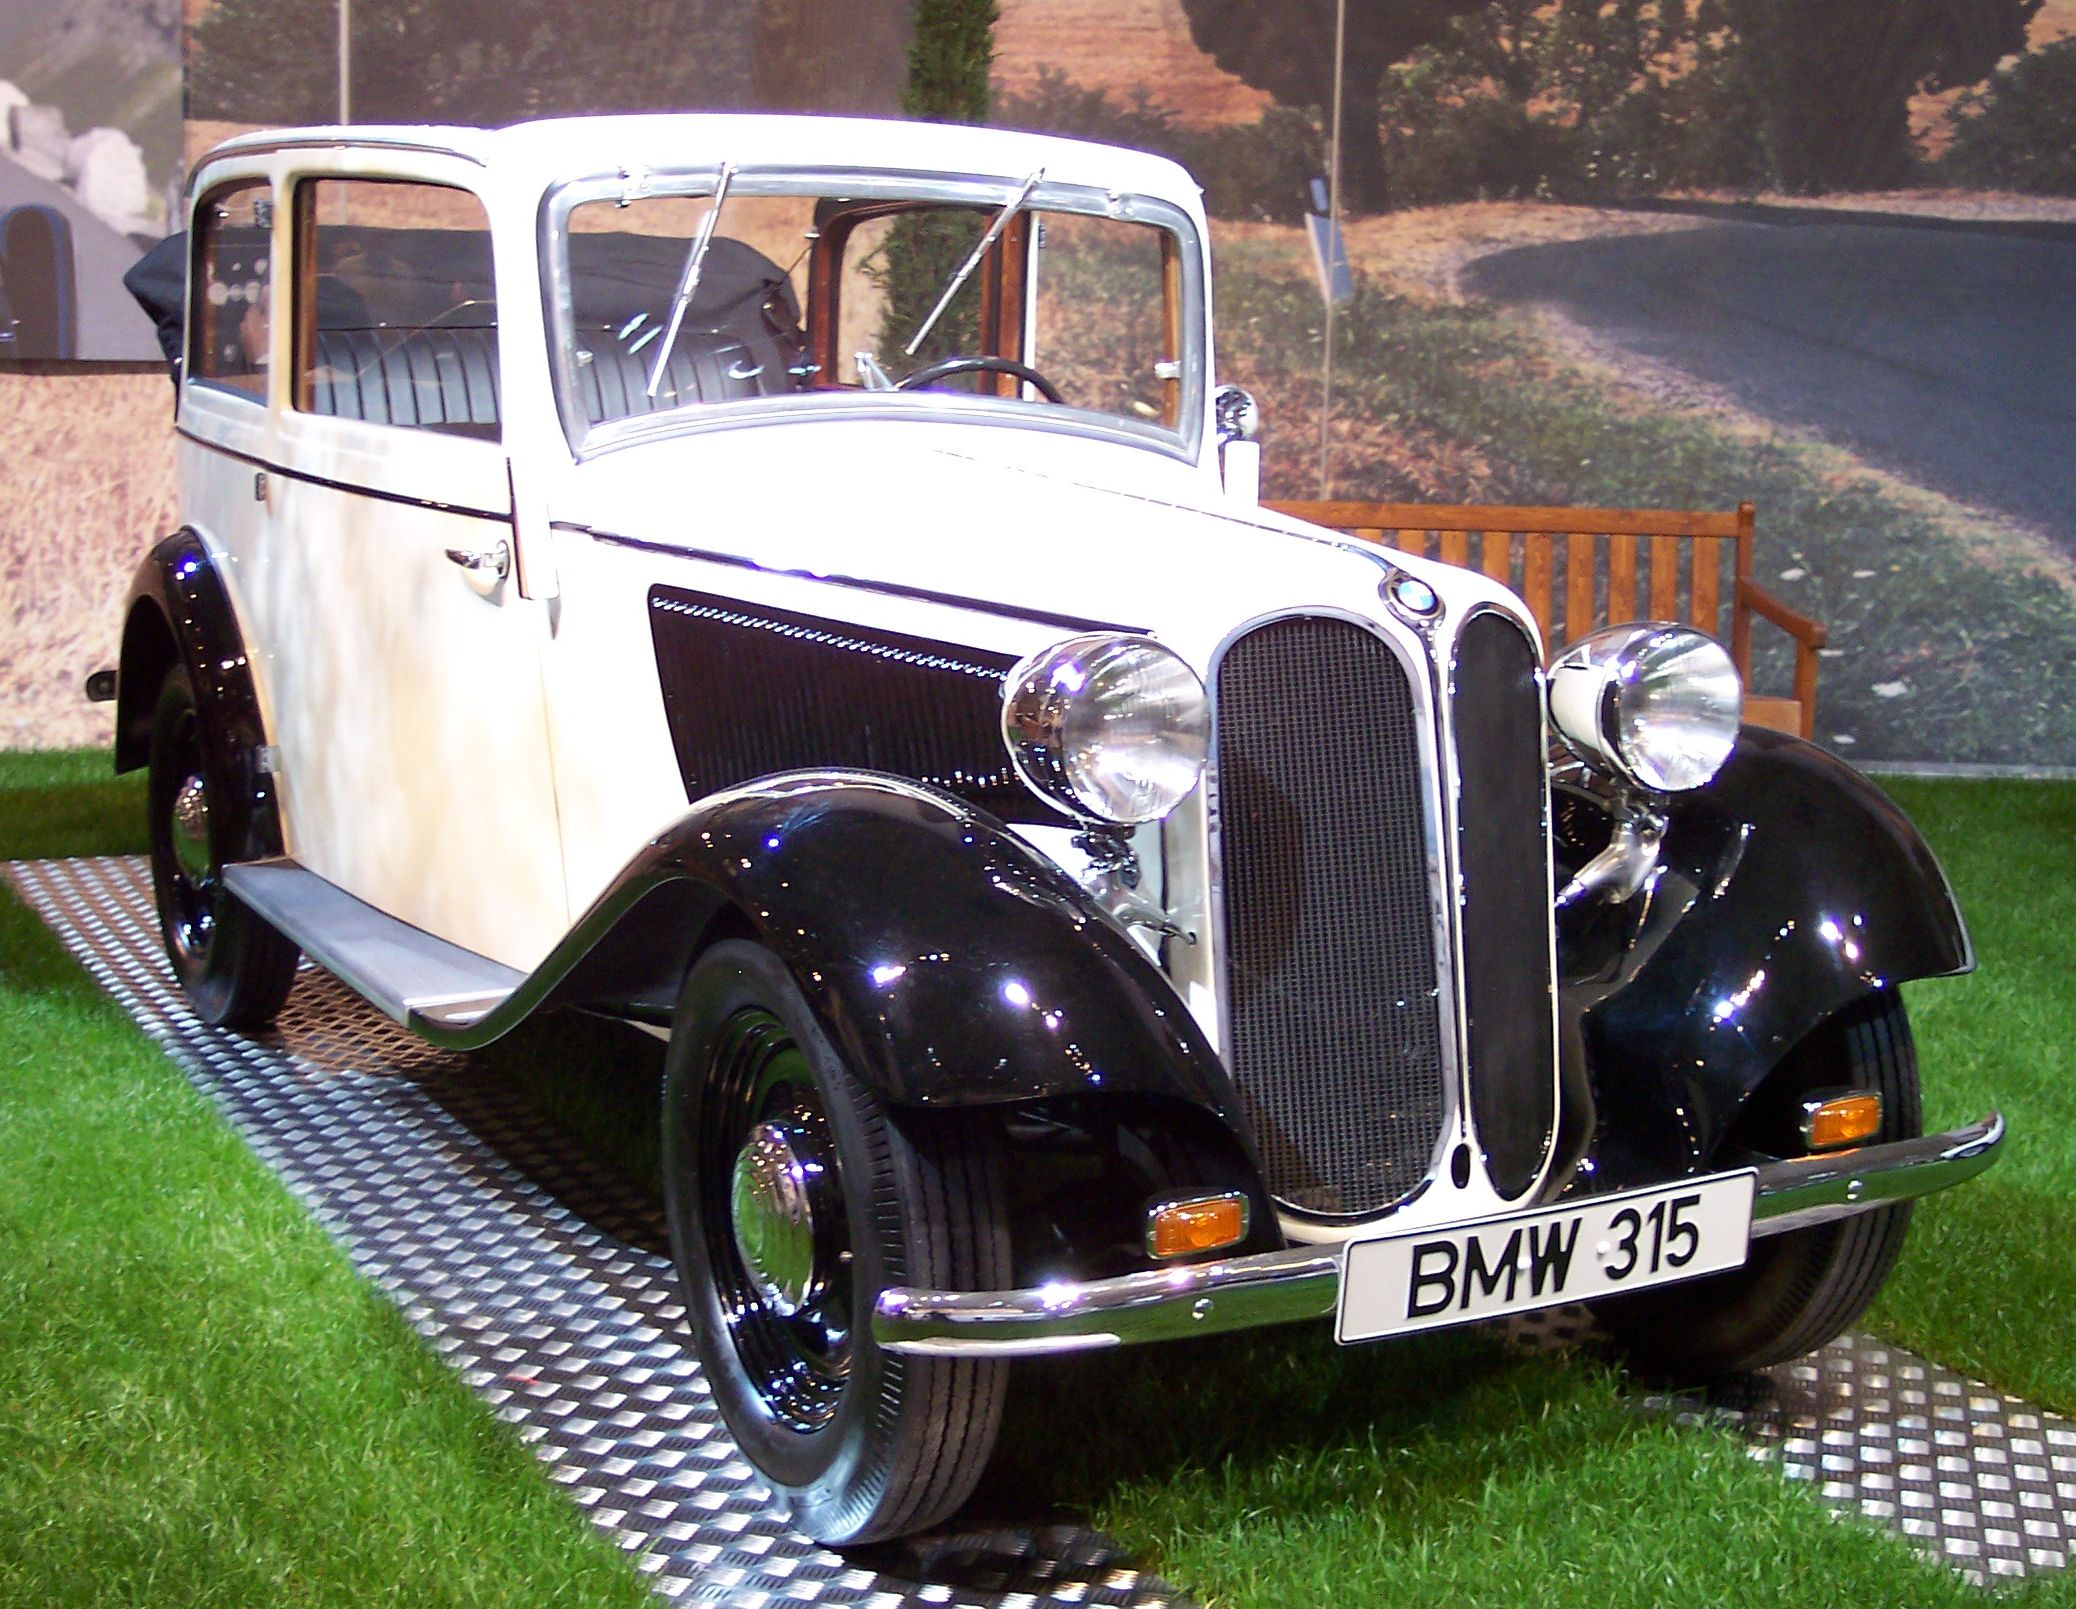 File:BMW 315 1936 white vr TCE.jpg - Wikipedia, the free encyclopedia